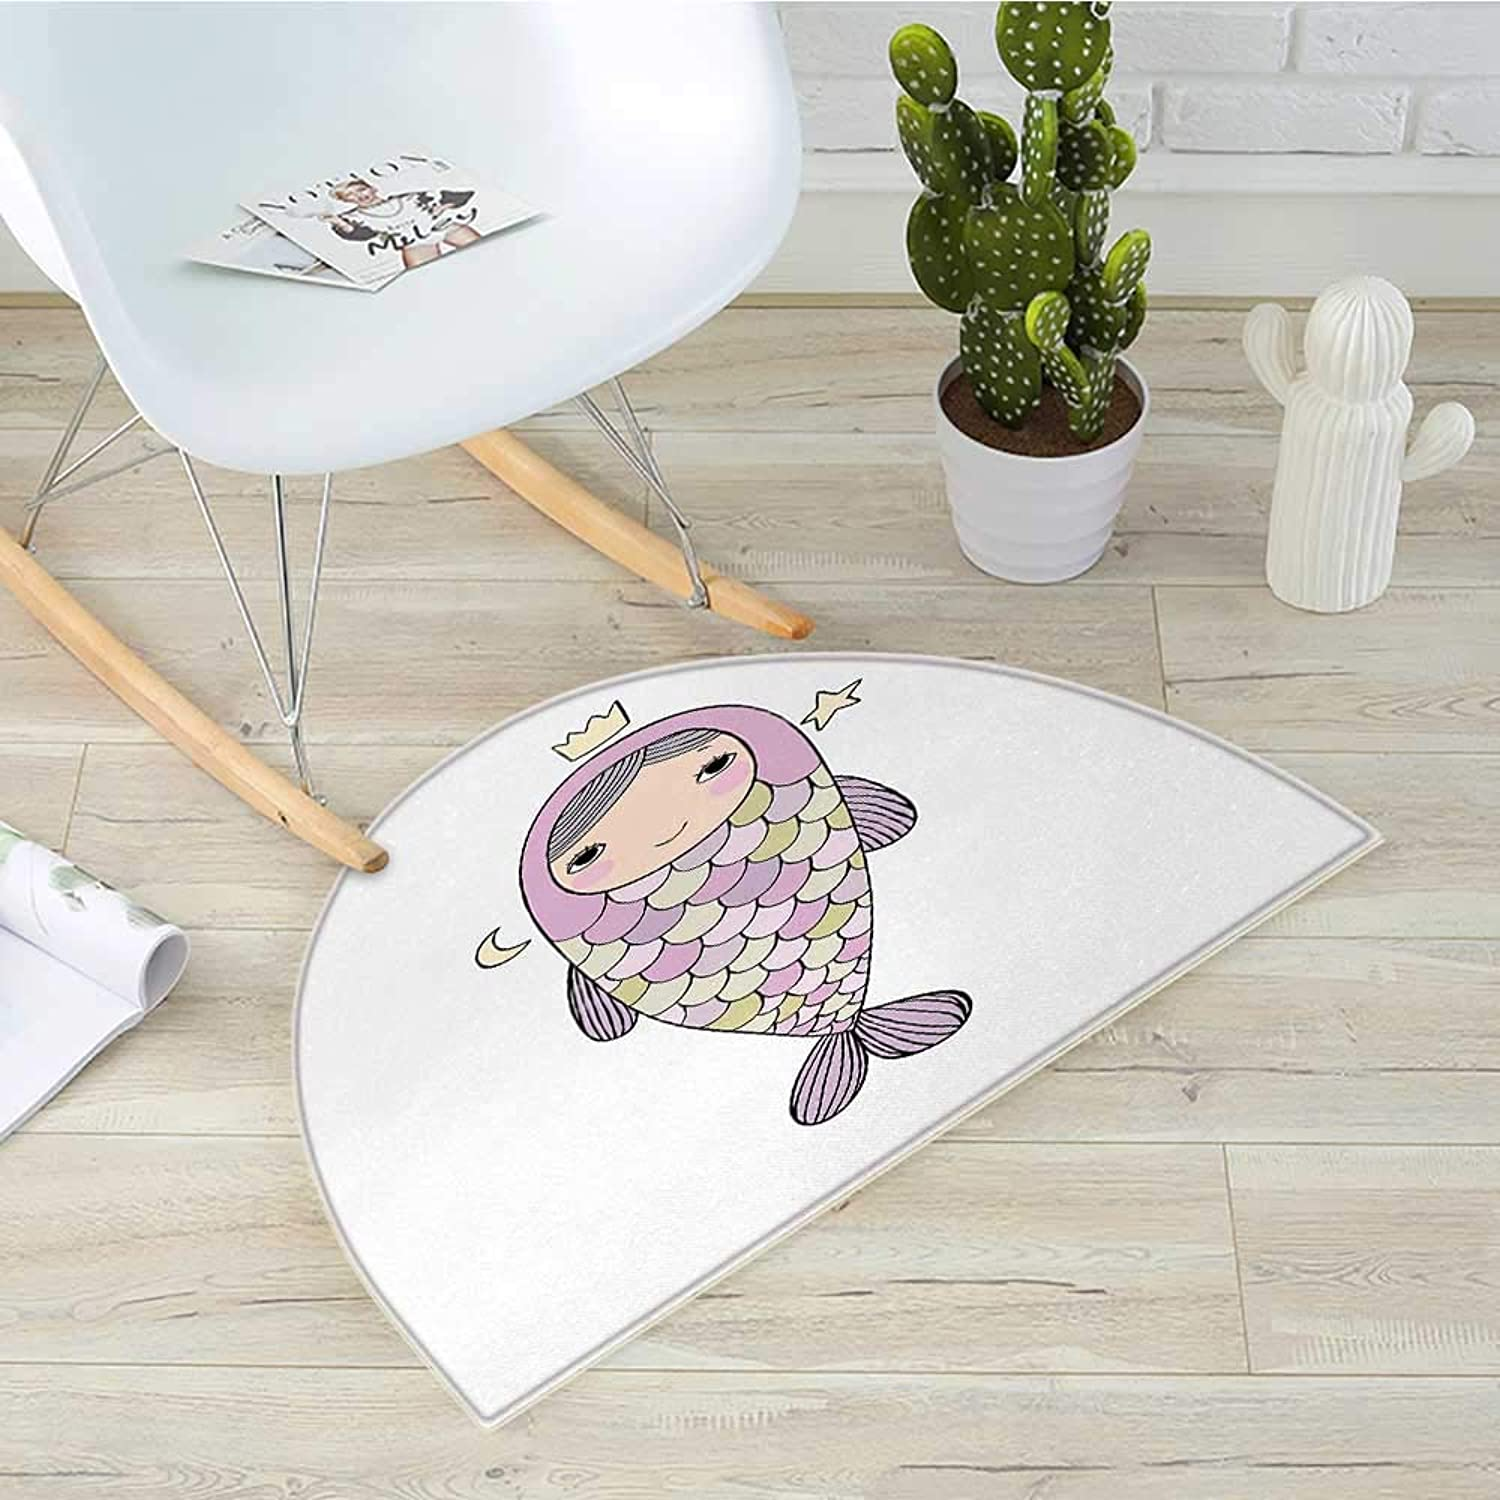 Mermaid Semicircular CushionFantasy Sea Life Mythological Character Girl in Fish Costume with Crown Moon Stars Entry Door Mat H 39.3  xD 59  Multicolor